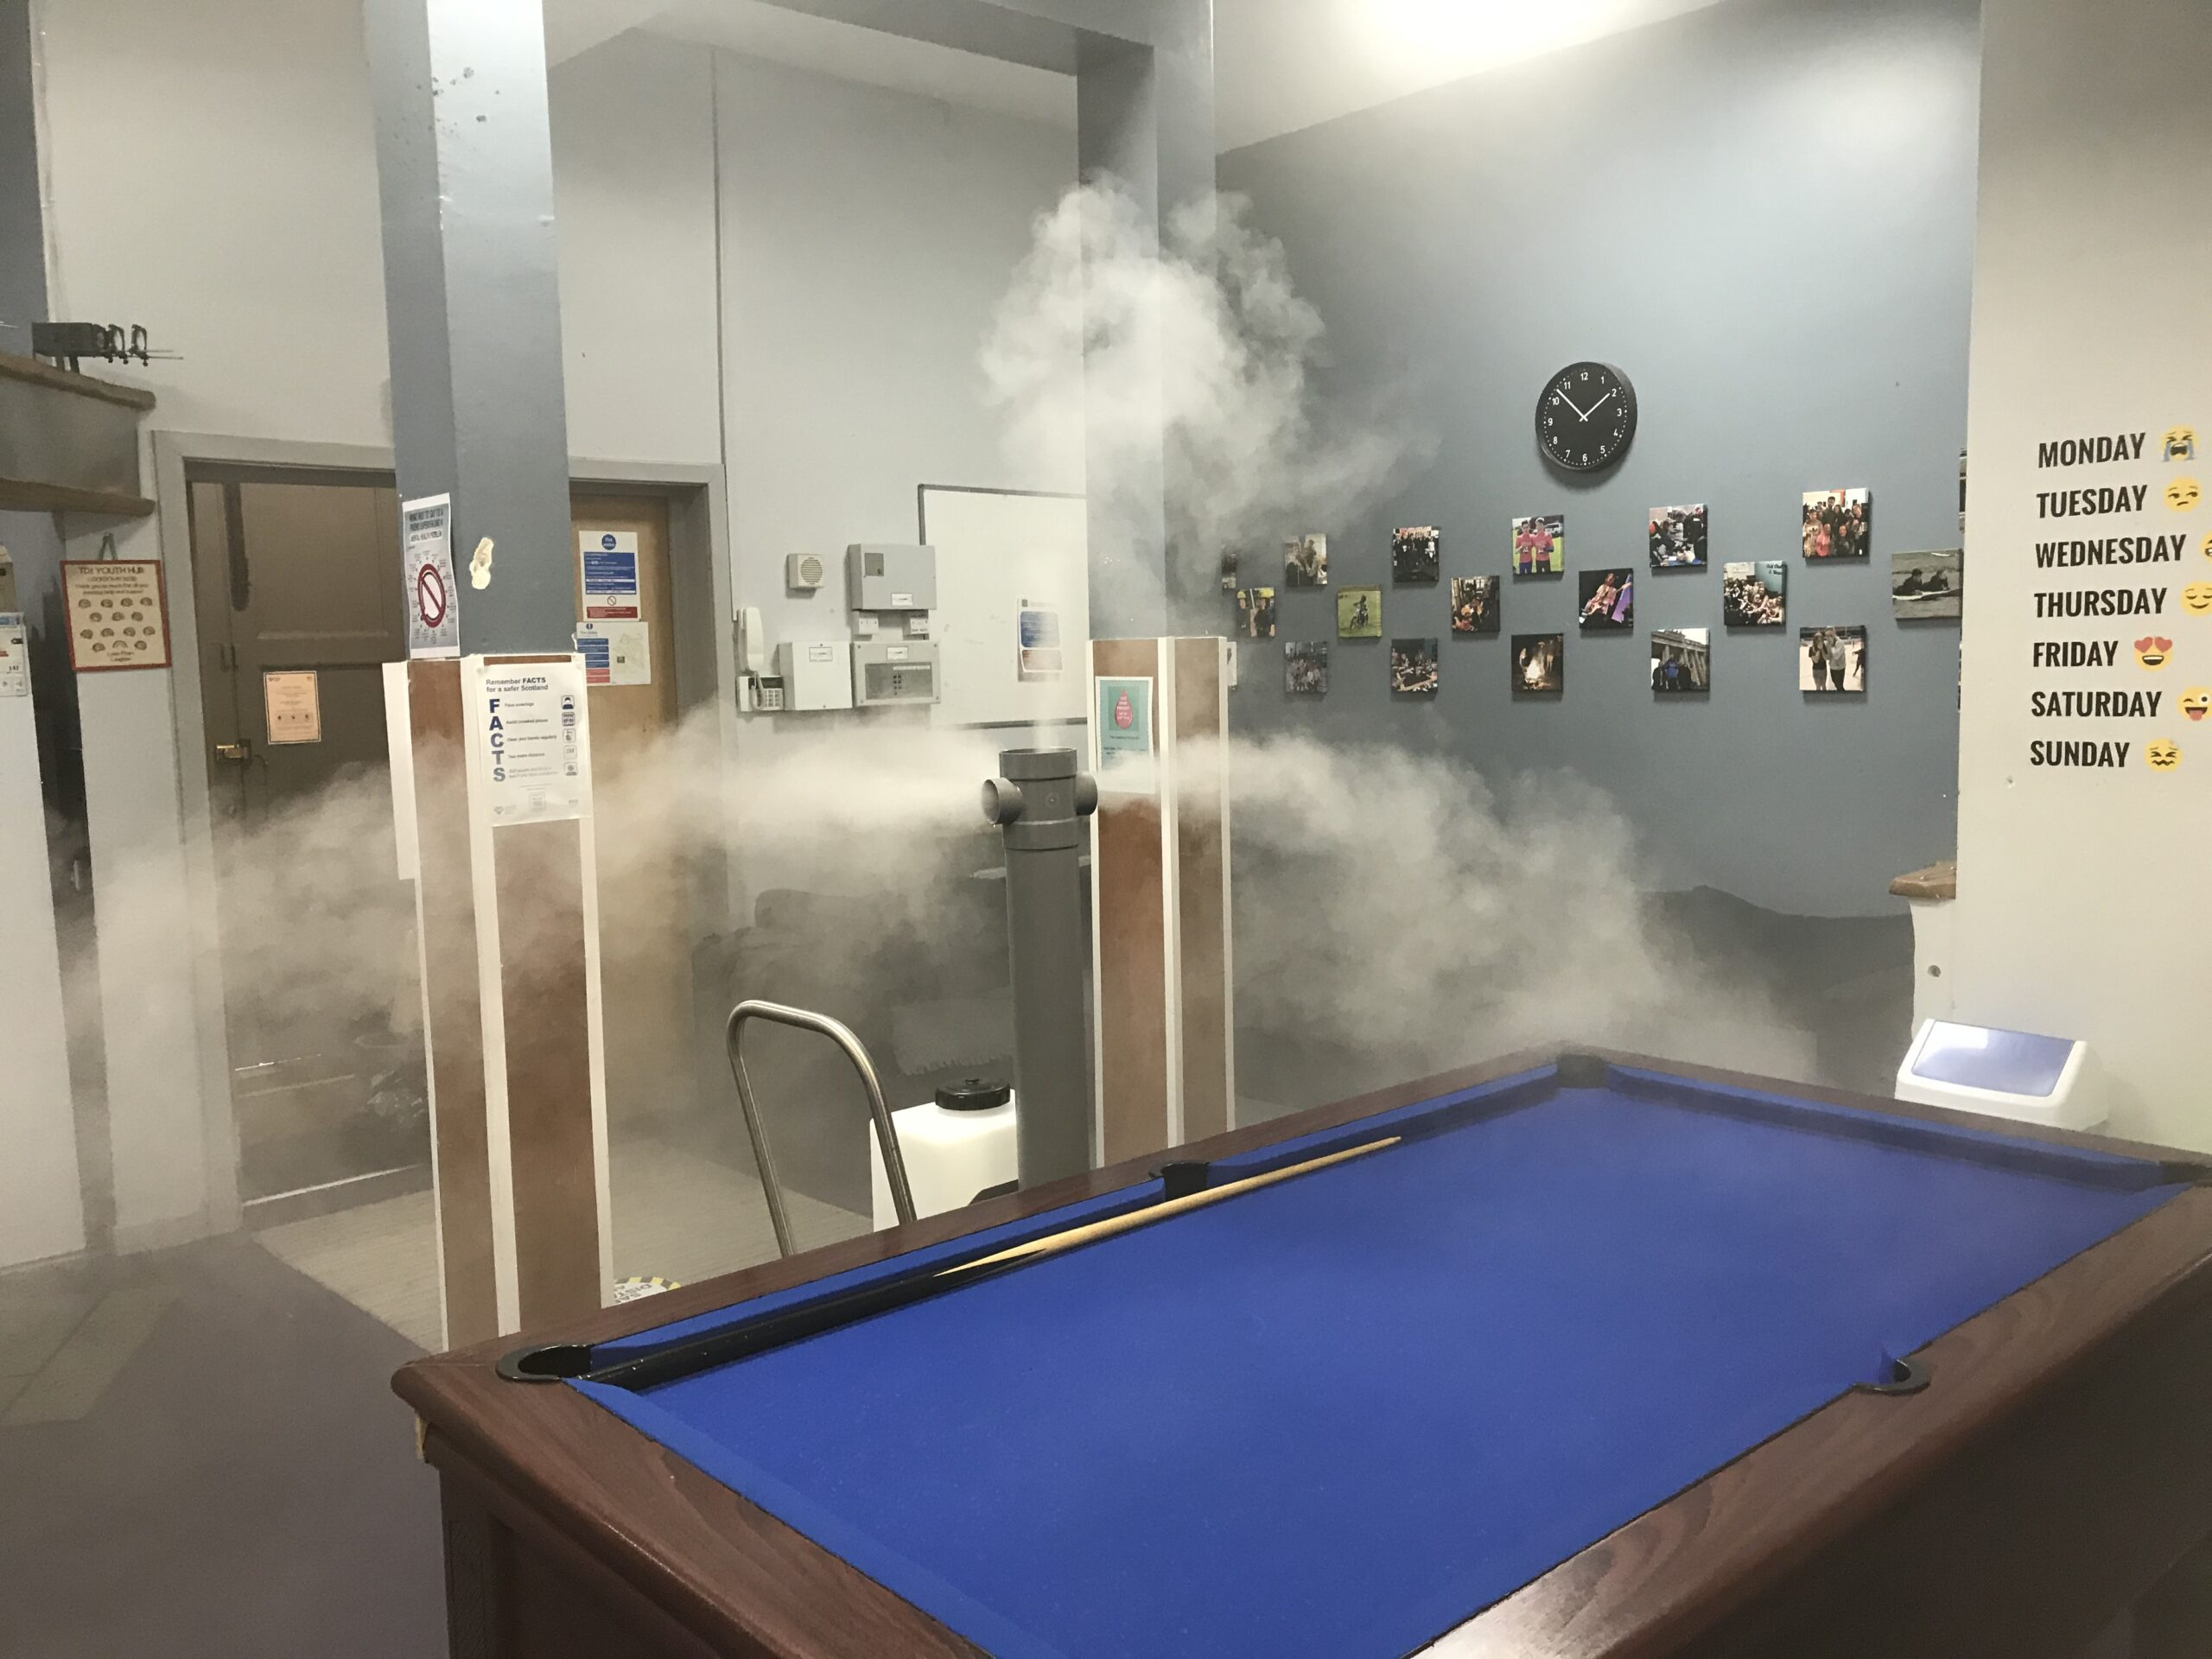 Our new, non-toxic fogging service has arrived!